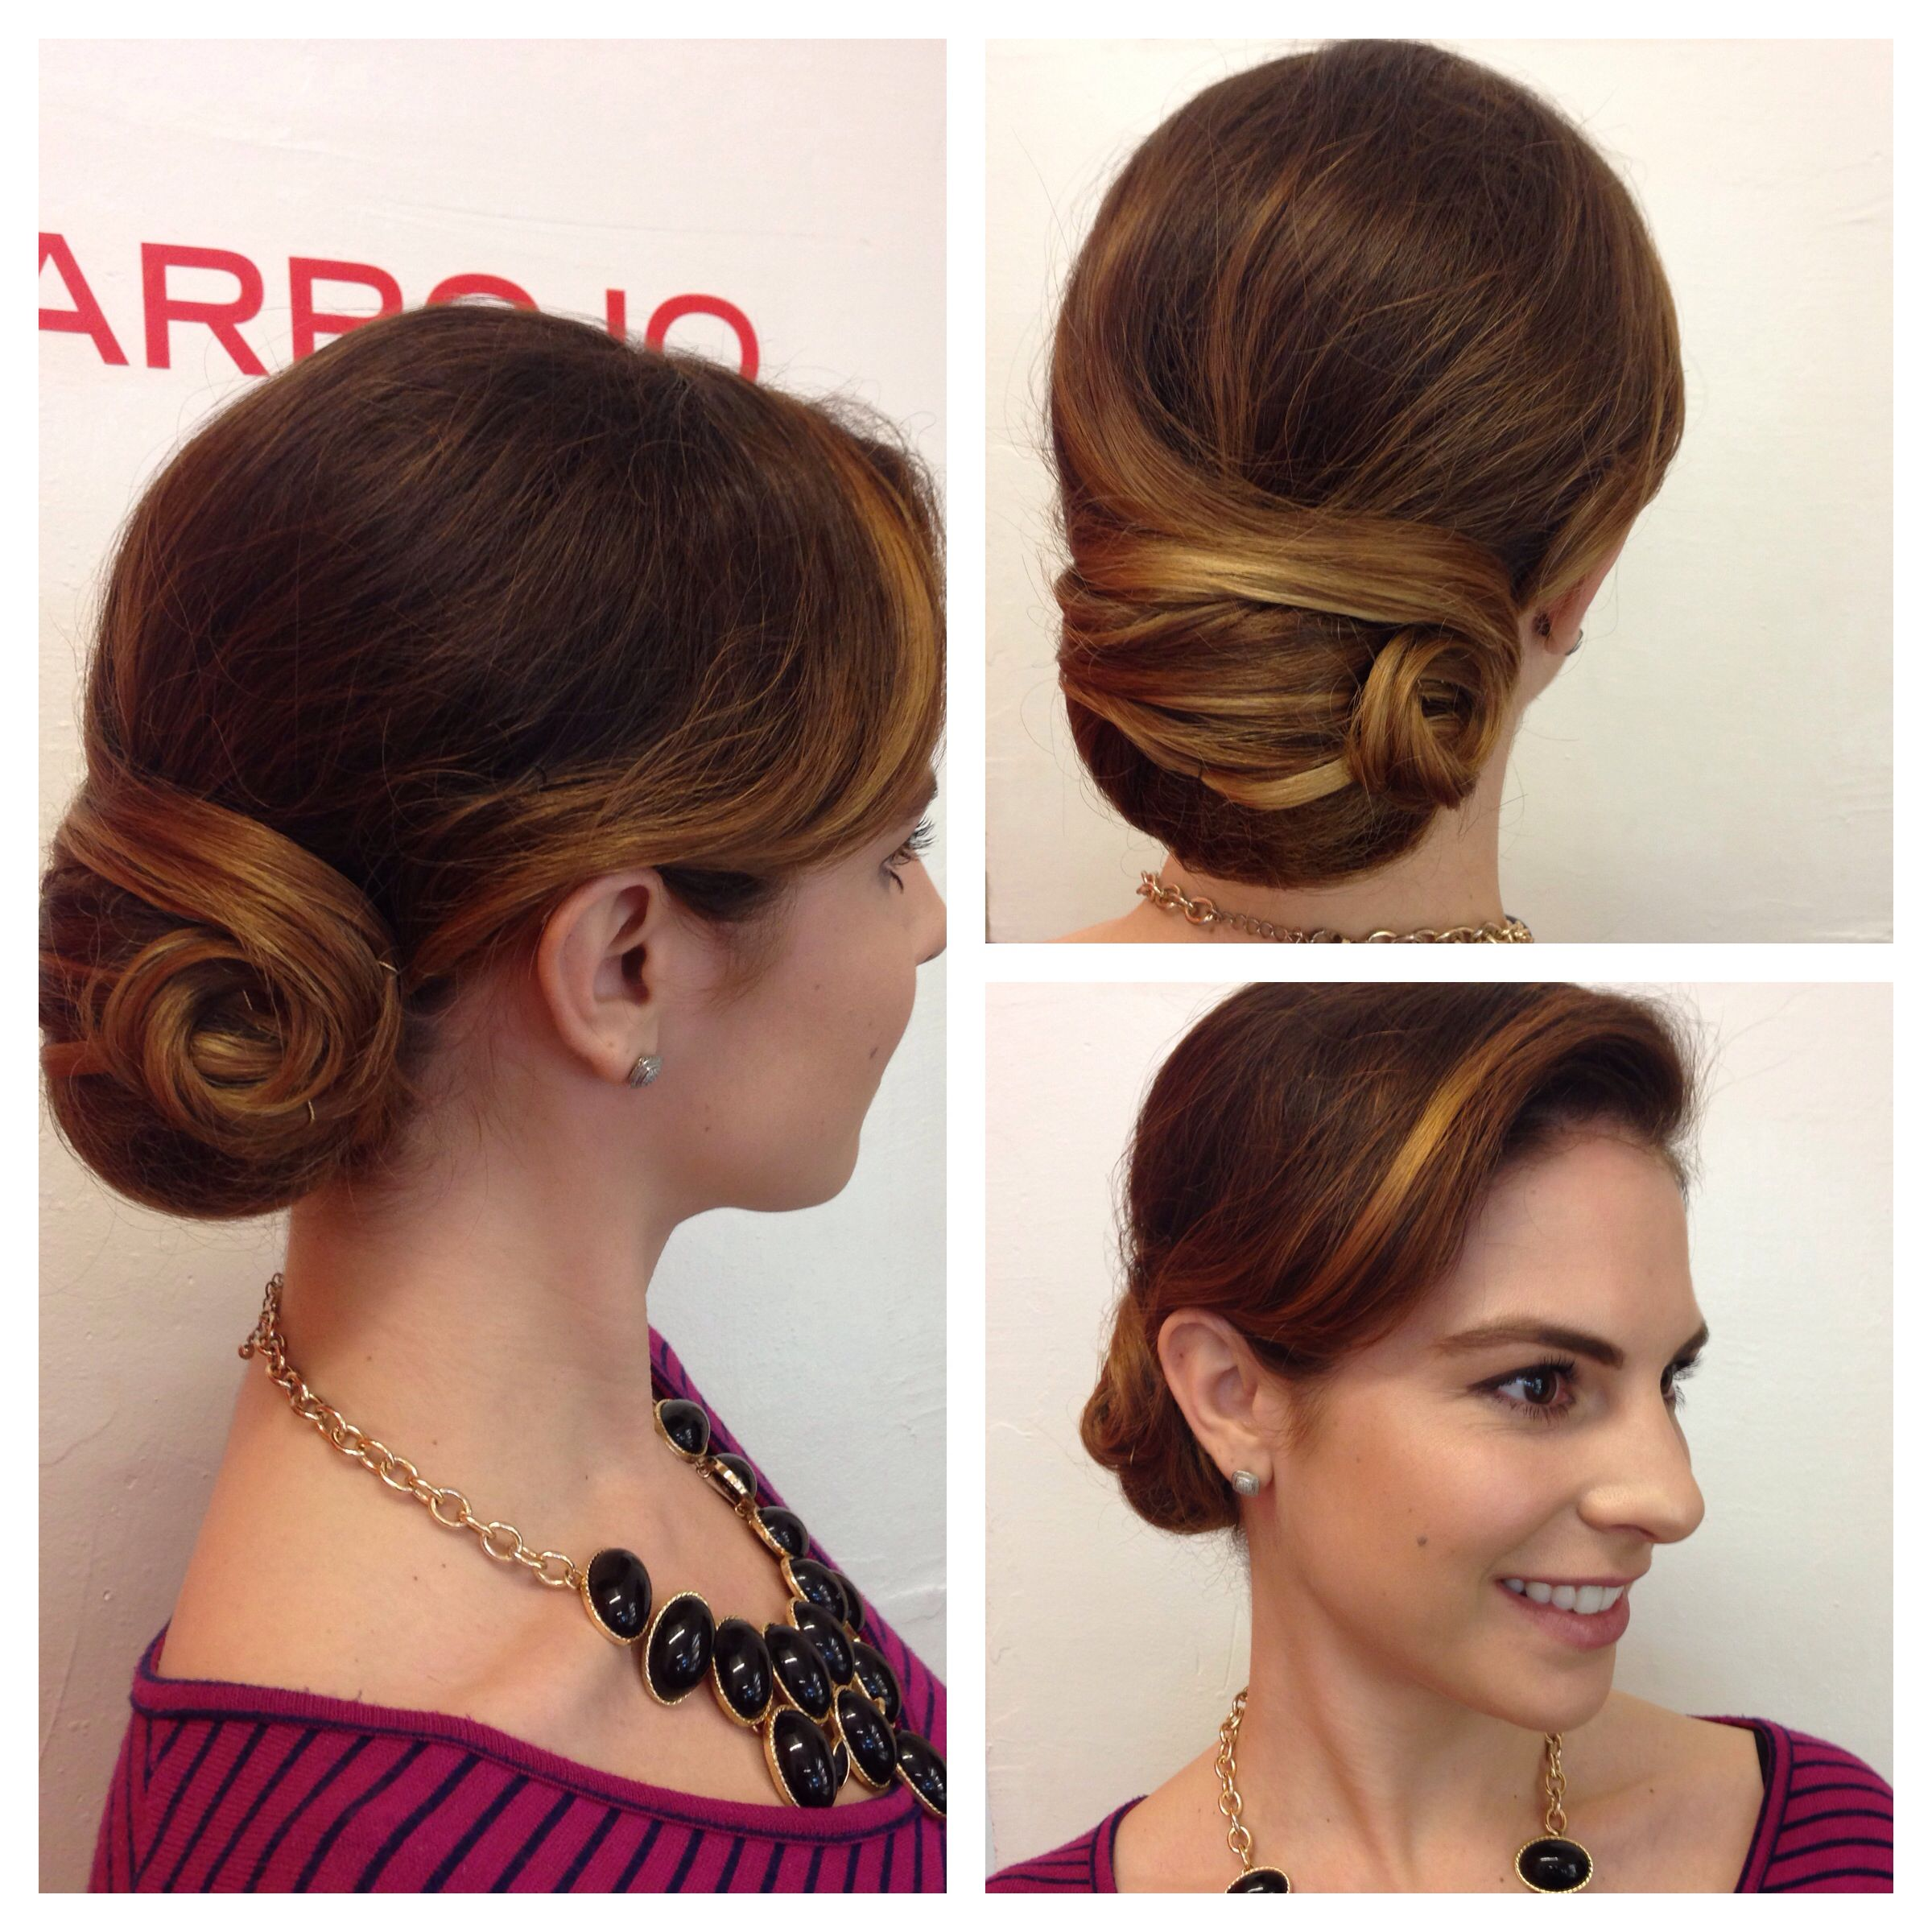 Sleek And Smooth Updo Classic Bun Low Bun Finger Waves Chignon